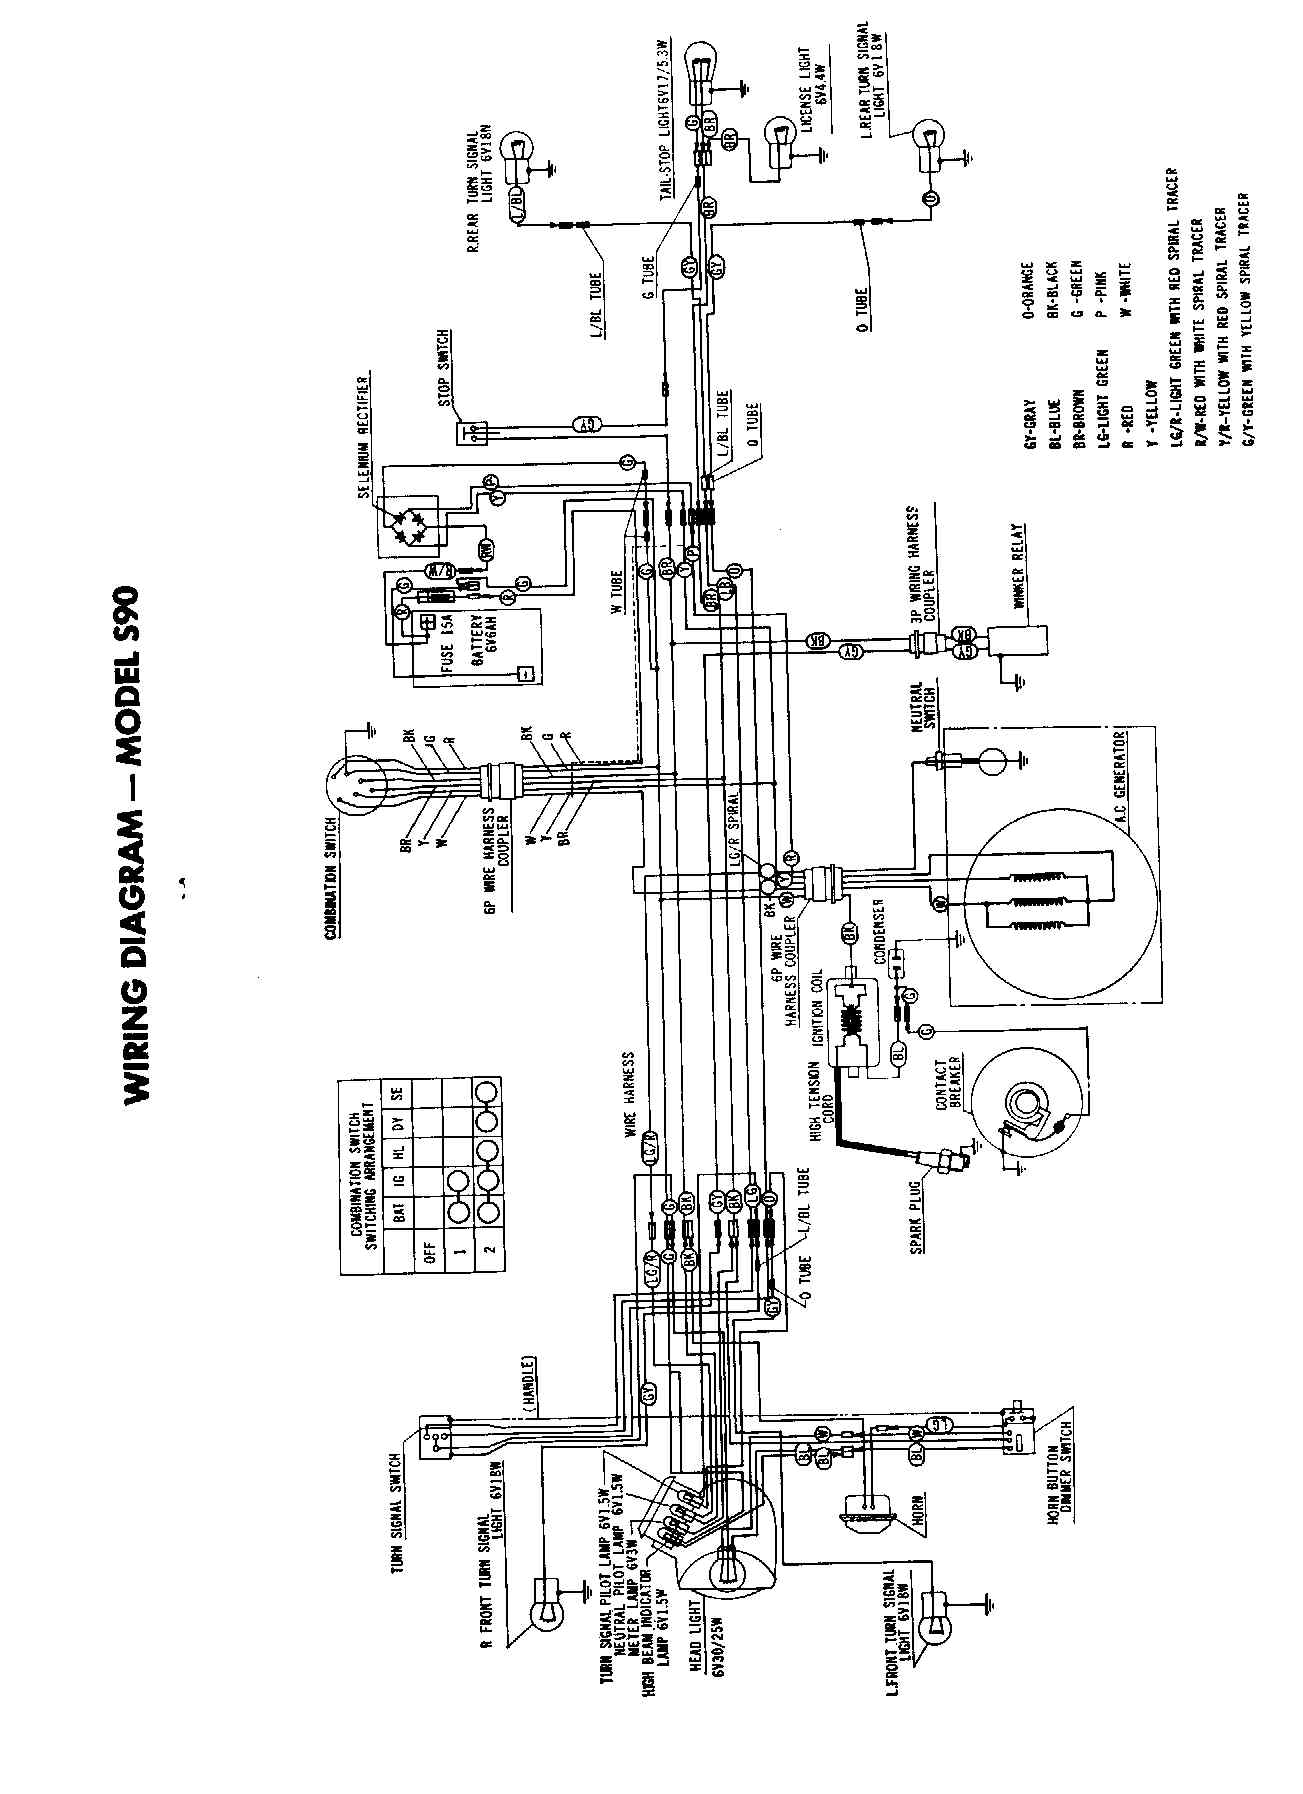 Honda Bf50 Wiring Diagram Excellent Electrical House Bf50a Library Rh 68 Skriptoase De Air Filter Bf40